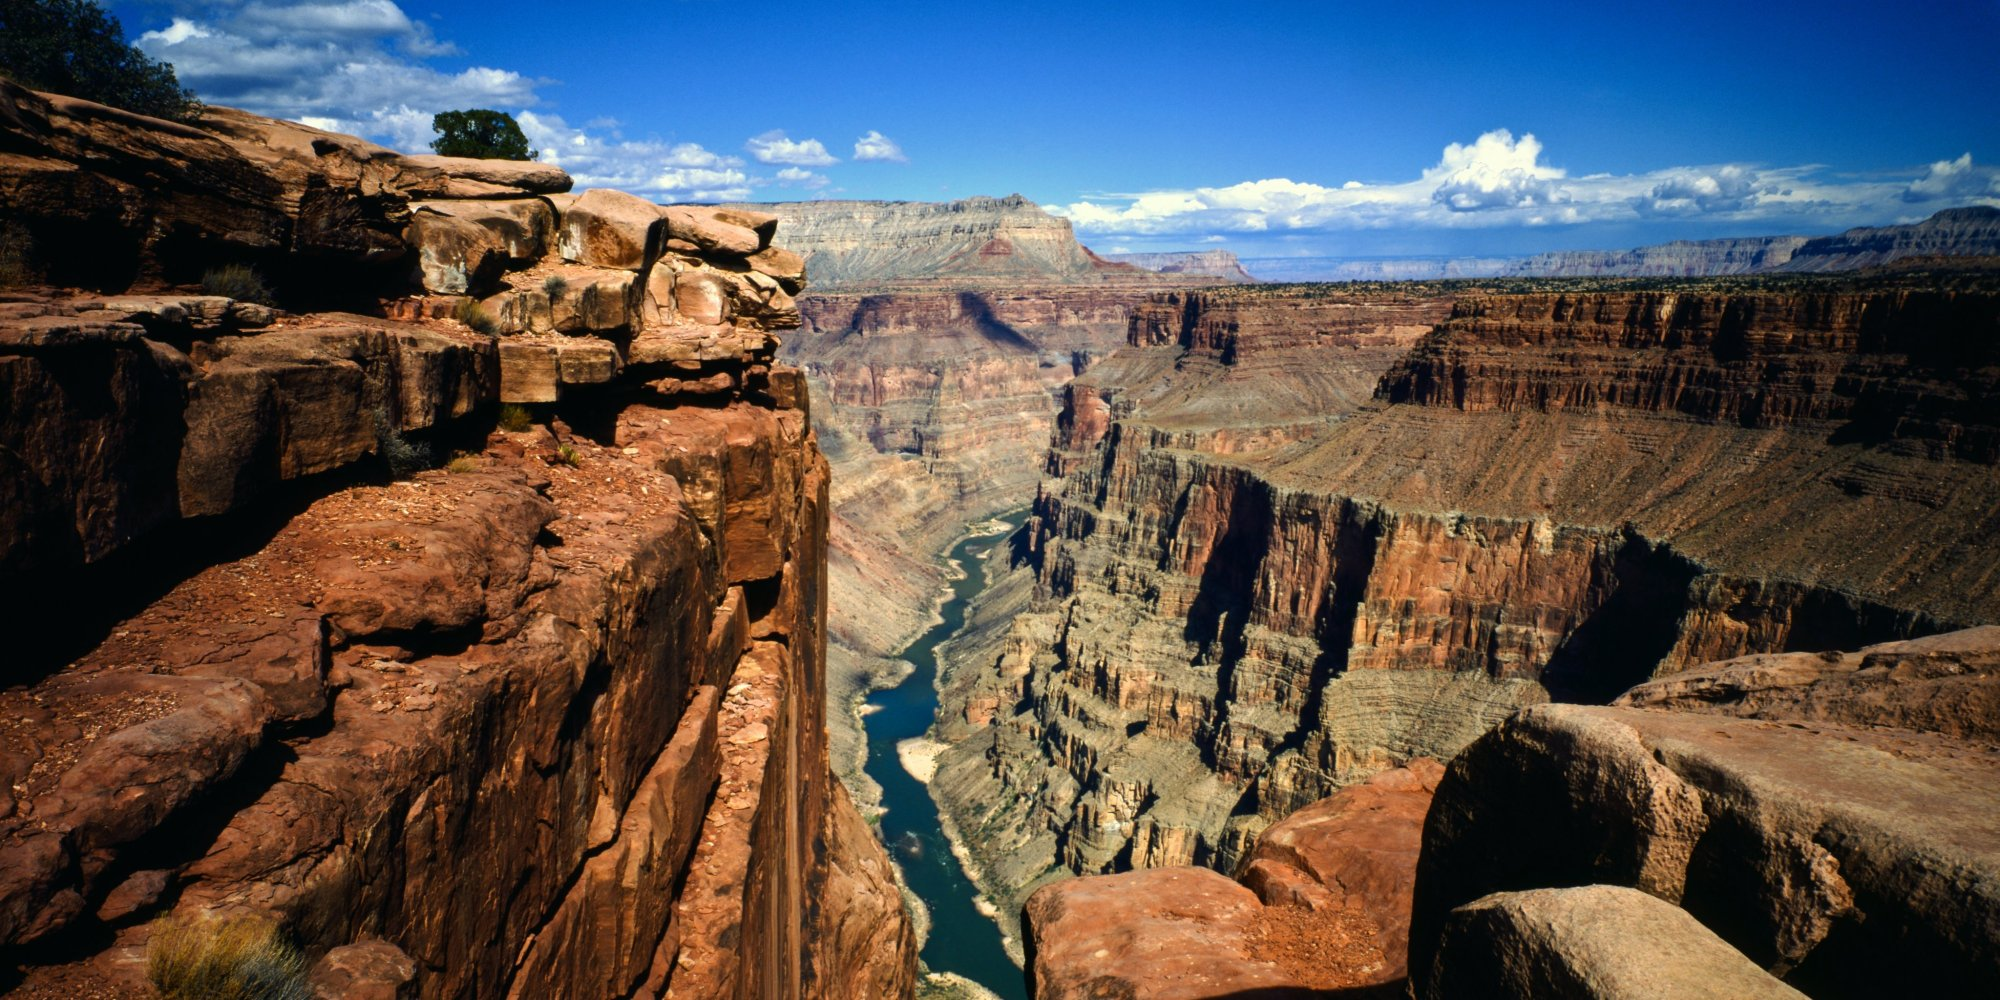 killer kayak guide kayaking the grand canyon killer kayaks. Black Bedroom Furniture Sets. Home Design Ideas